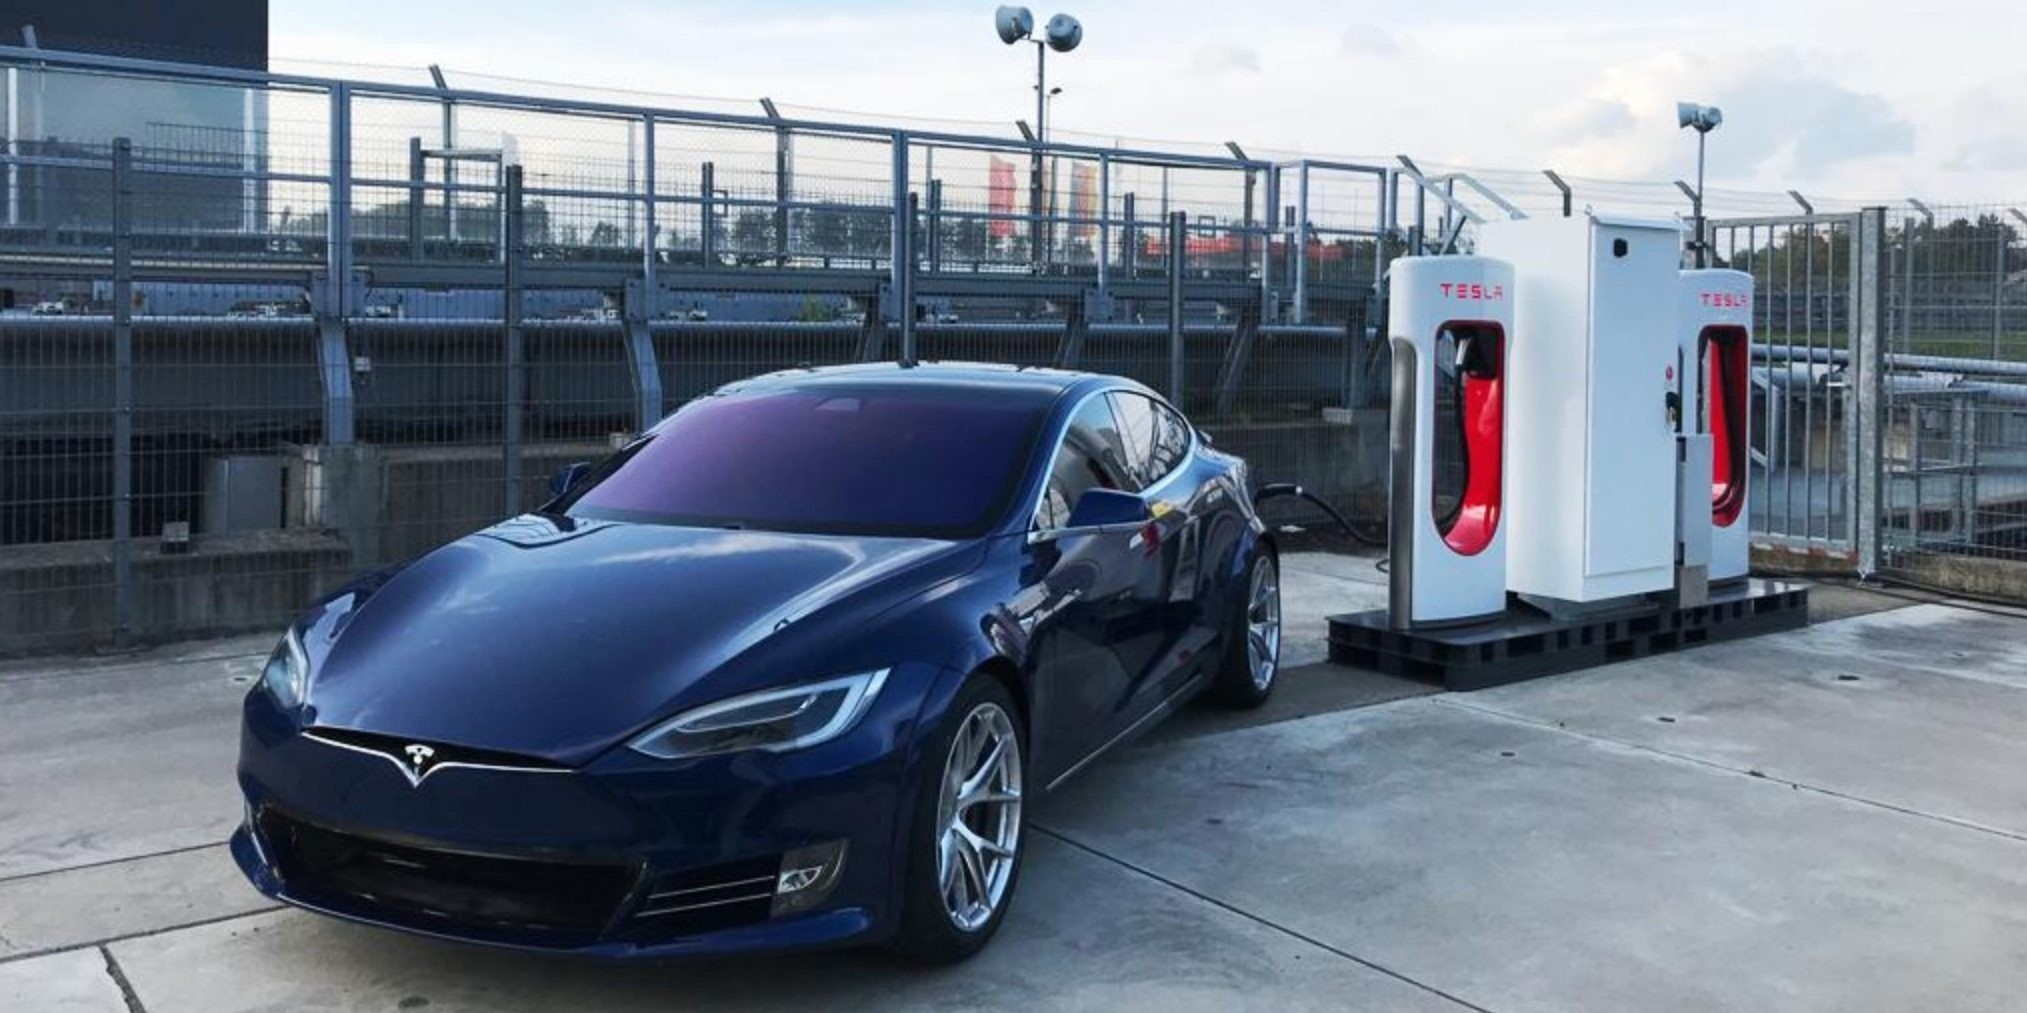 Tesla Model S Plaid prototype reportedly crashed on race track, new spoiler spotted - Electrek